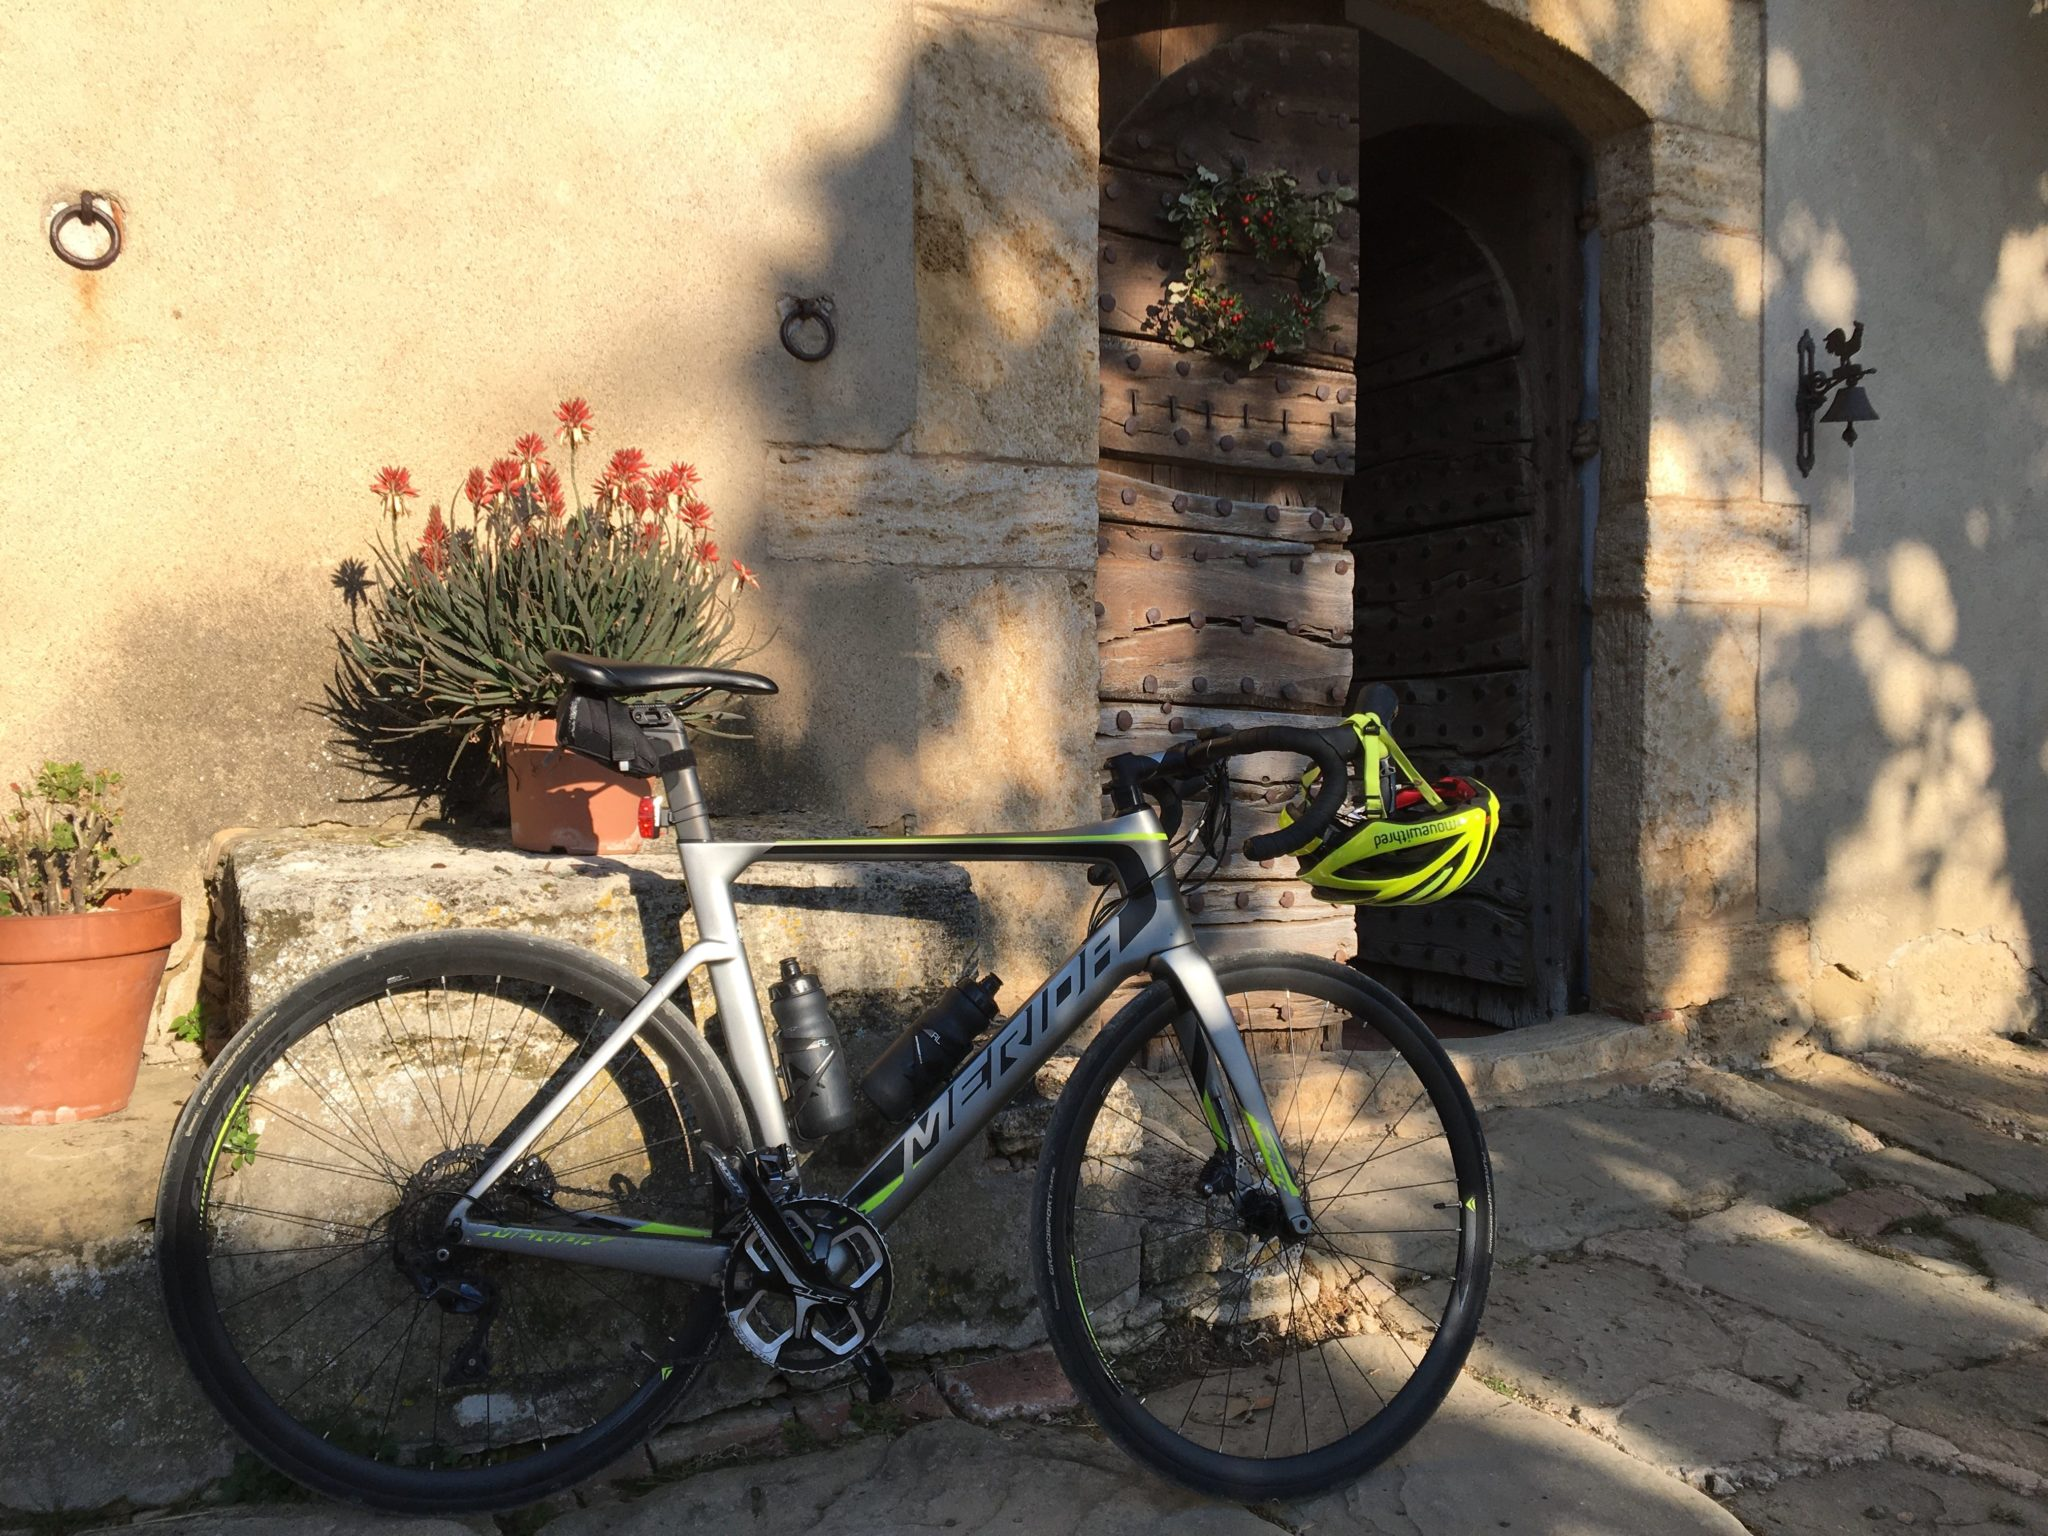 ROCACORBA CYCLING - theREDproject